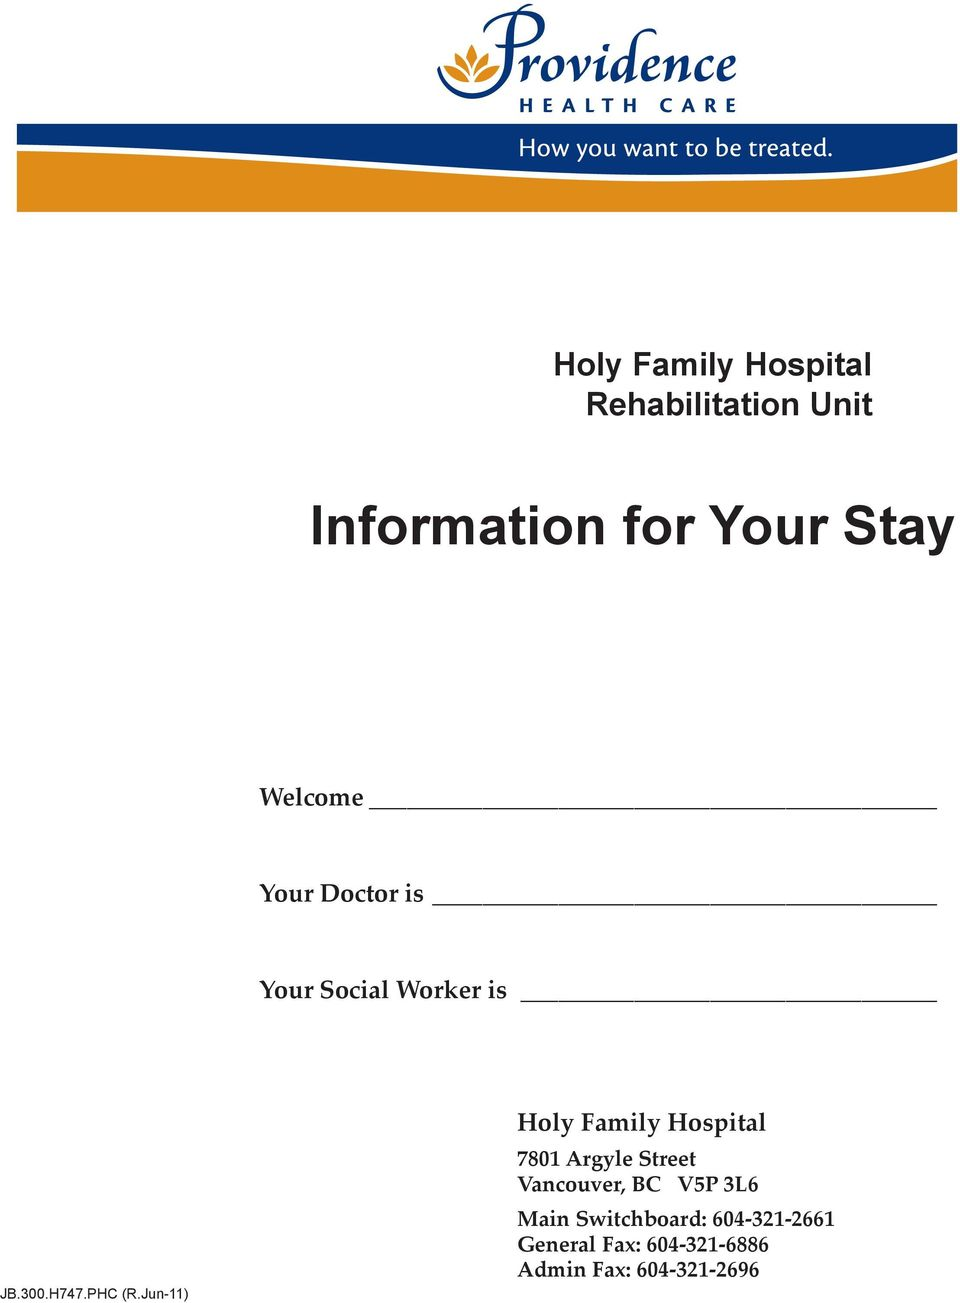 Jun-11) Holy Family Hospital 7801 Argyle Street Vancouver, BC V5P 3L6